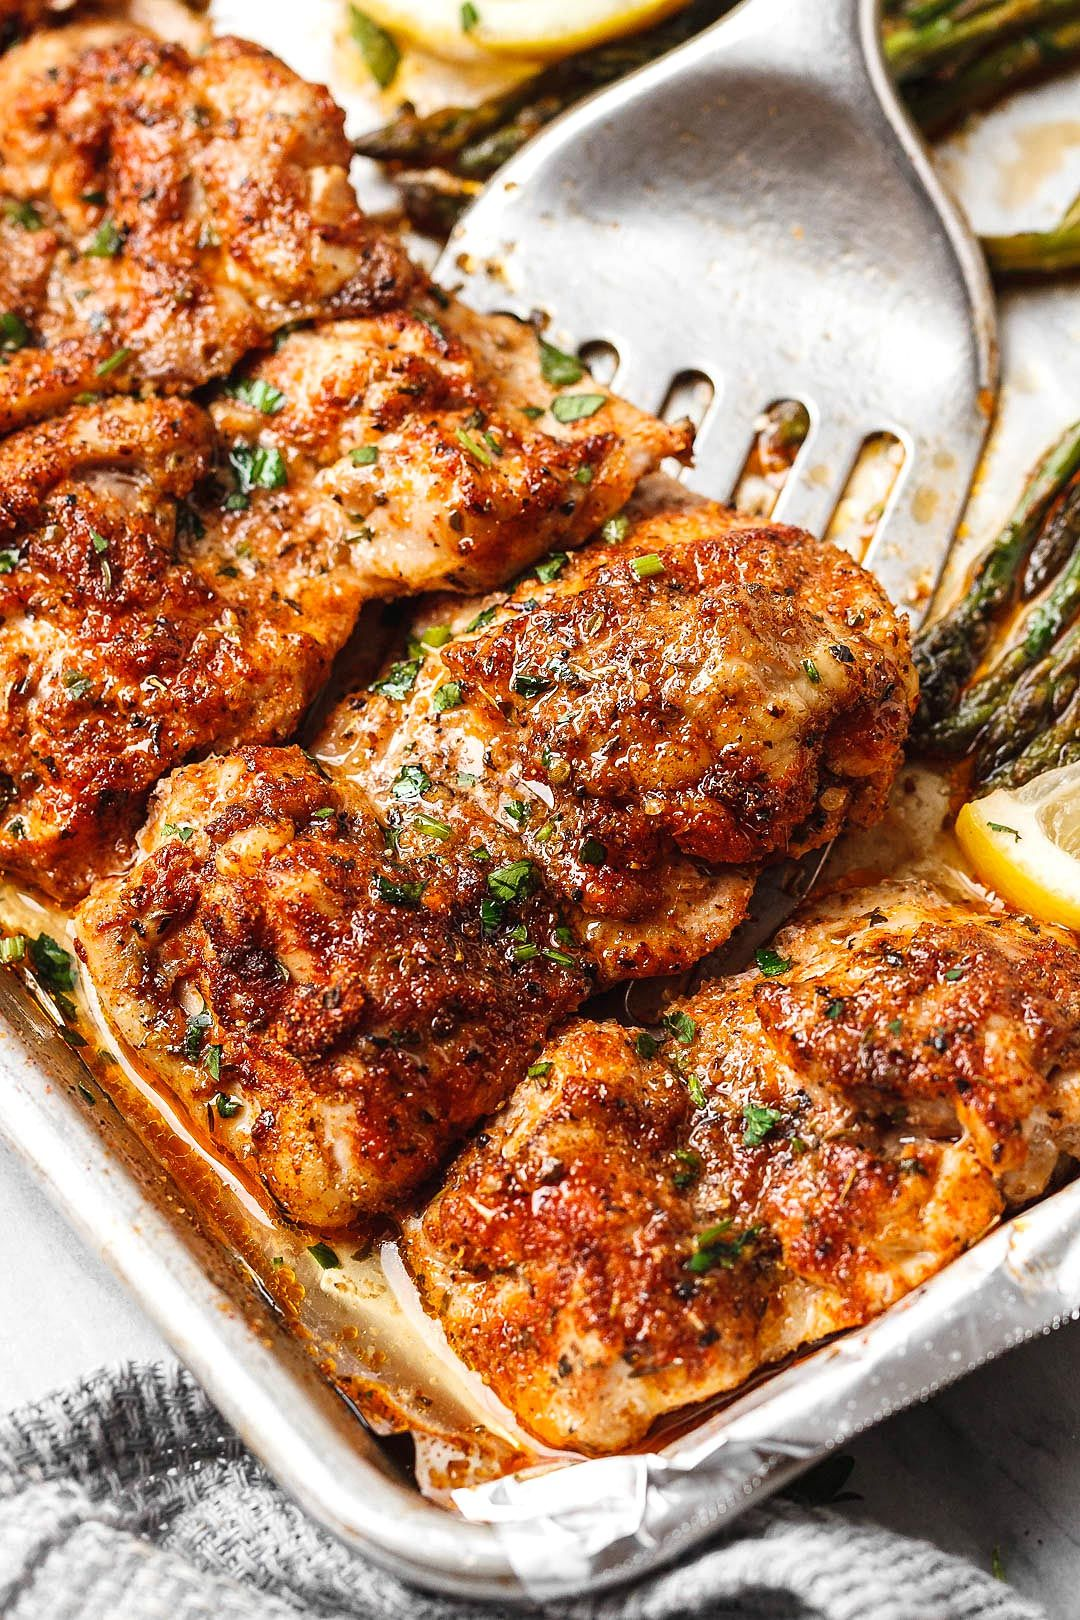 Best Oven Baked Chicken with Asparagus images